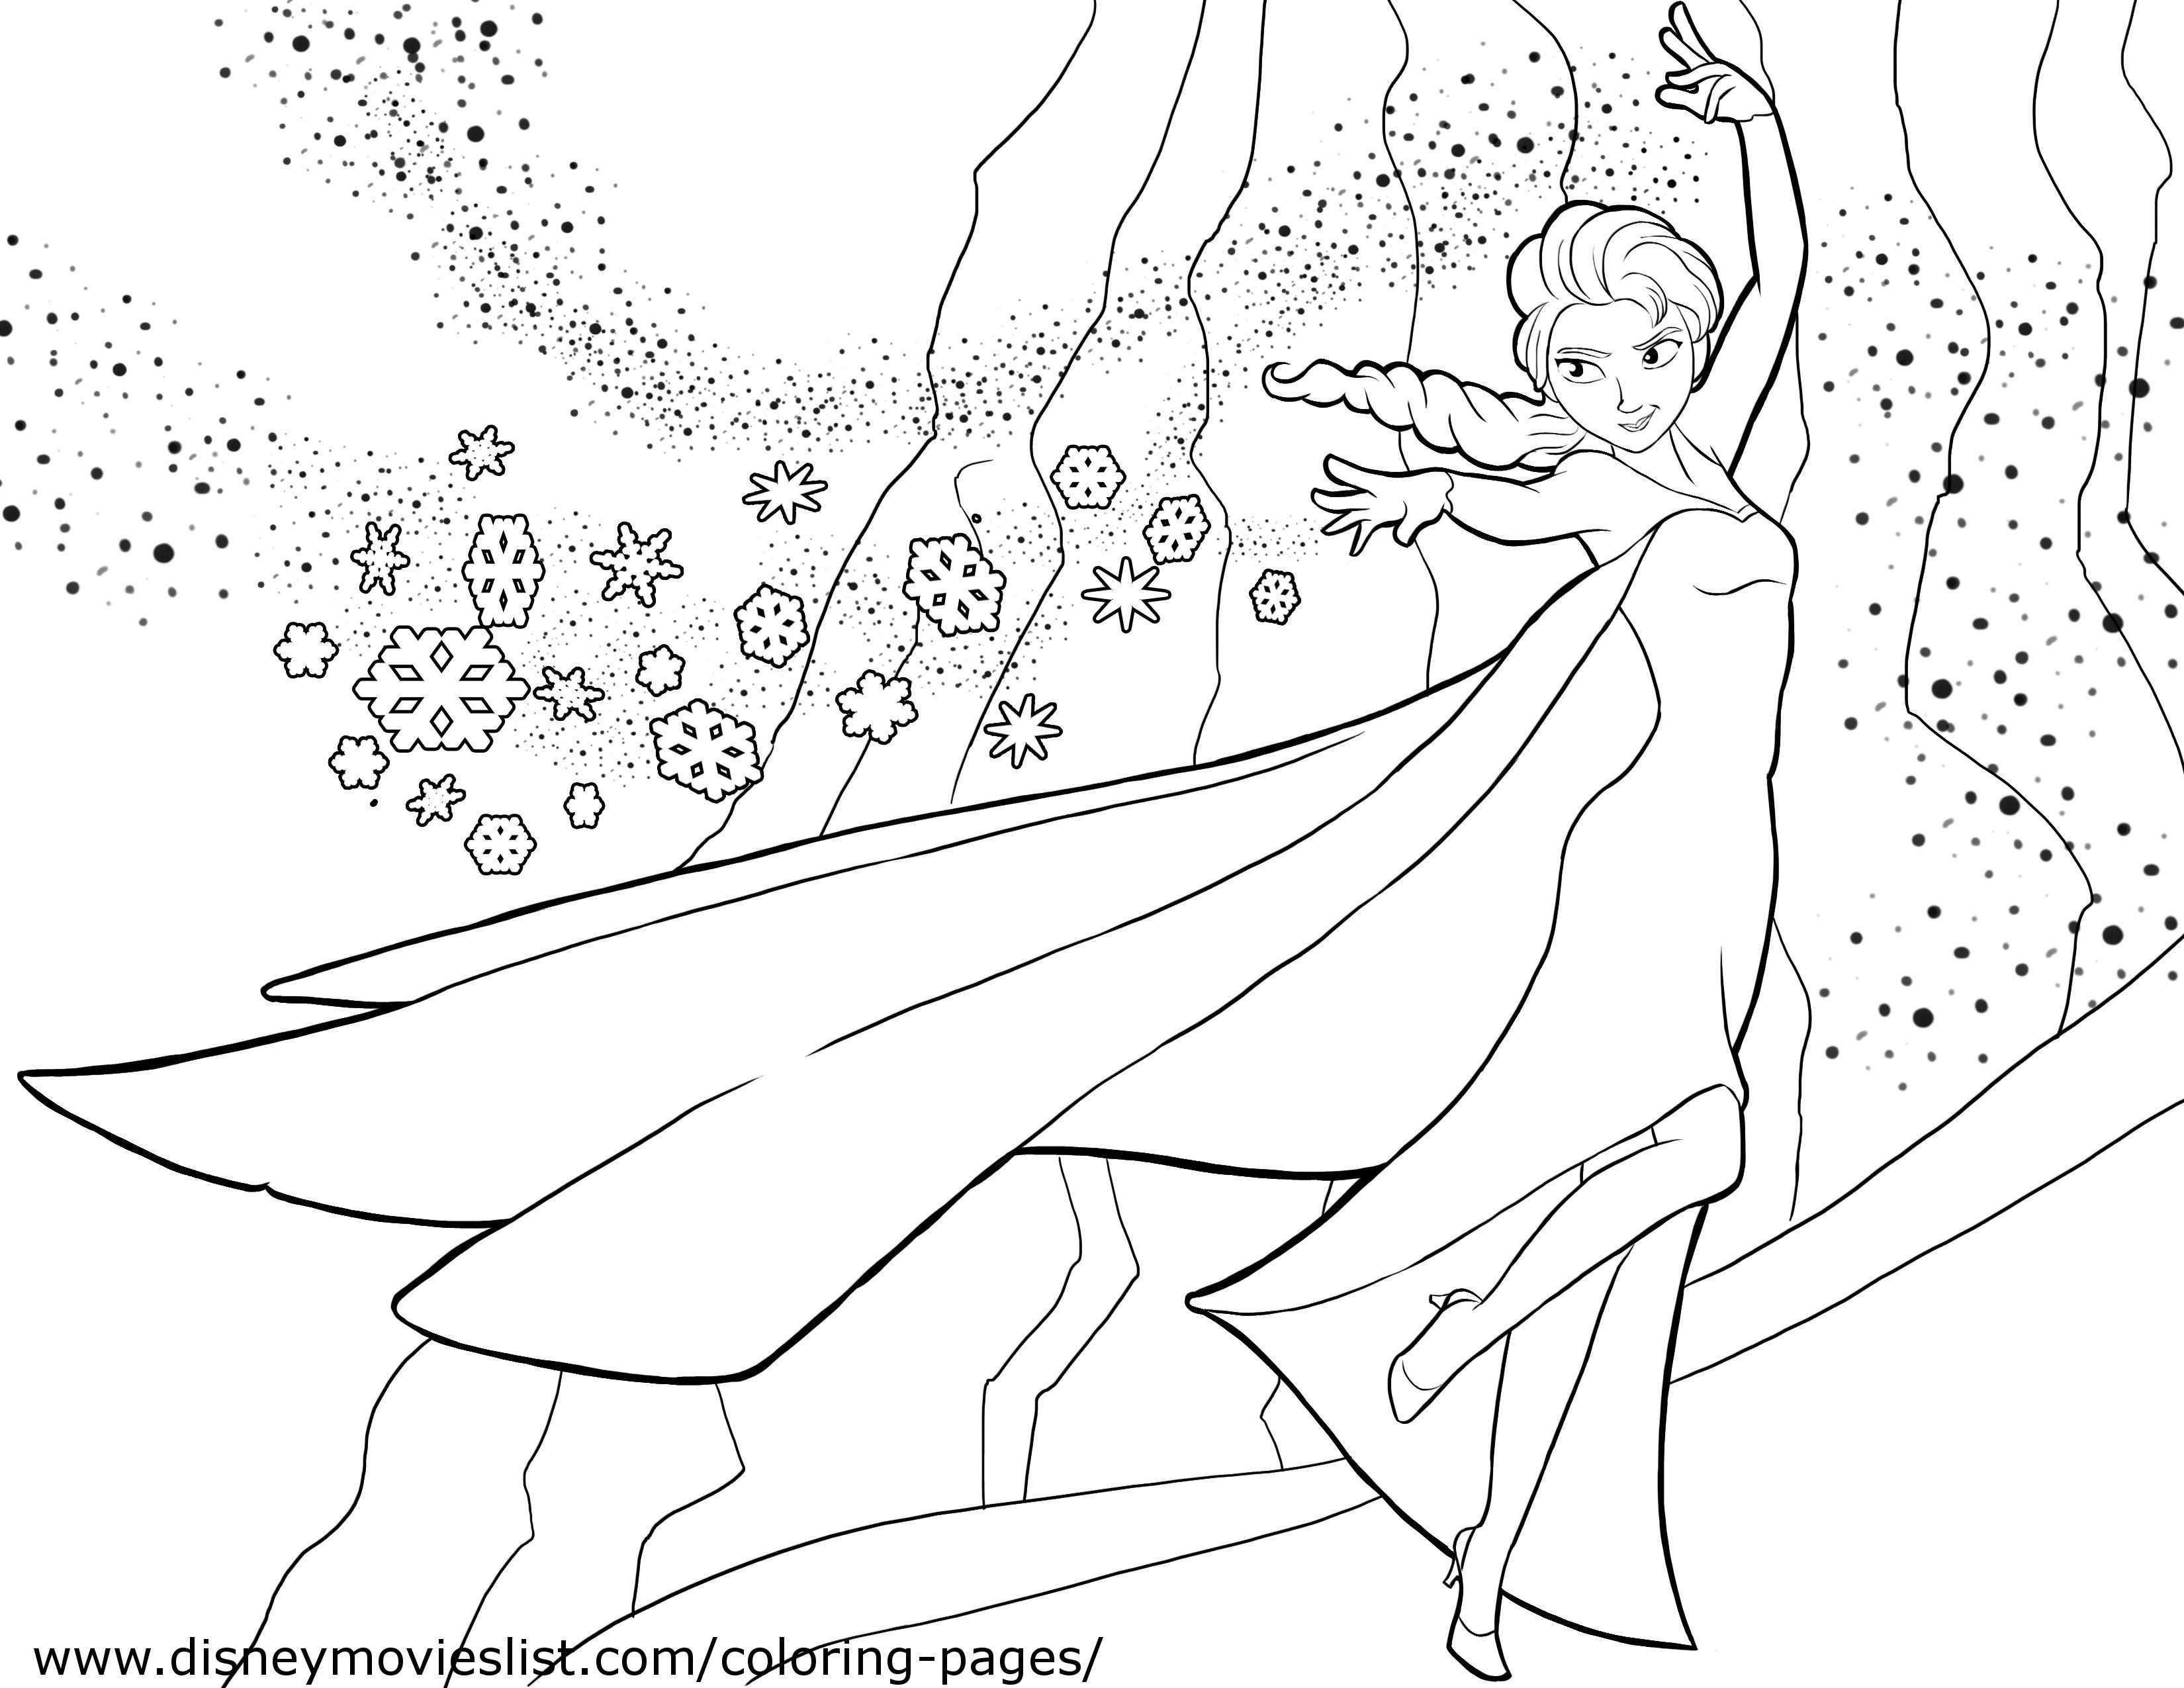 Frozen Elsa Coloring Pages To Print Coloring Pages Allow Kids To Accompany Their Favorite Char Frozen Coloring Pages Frozen Coloring Princess Coloring Pages [ jpg ]